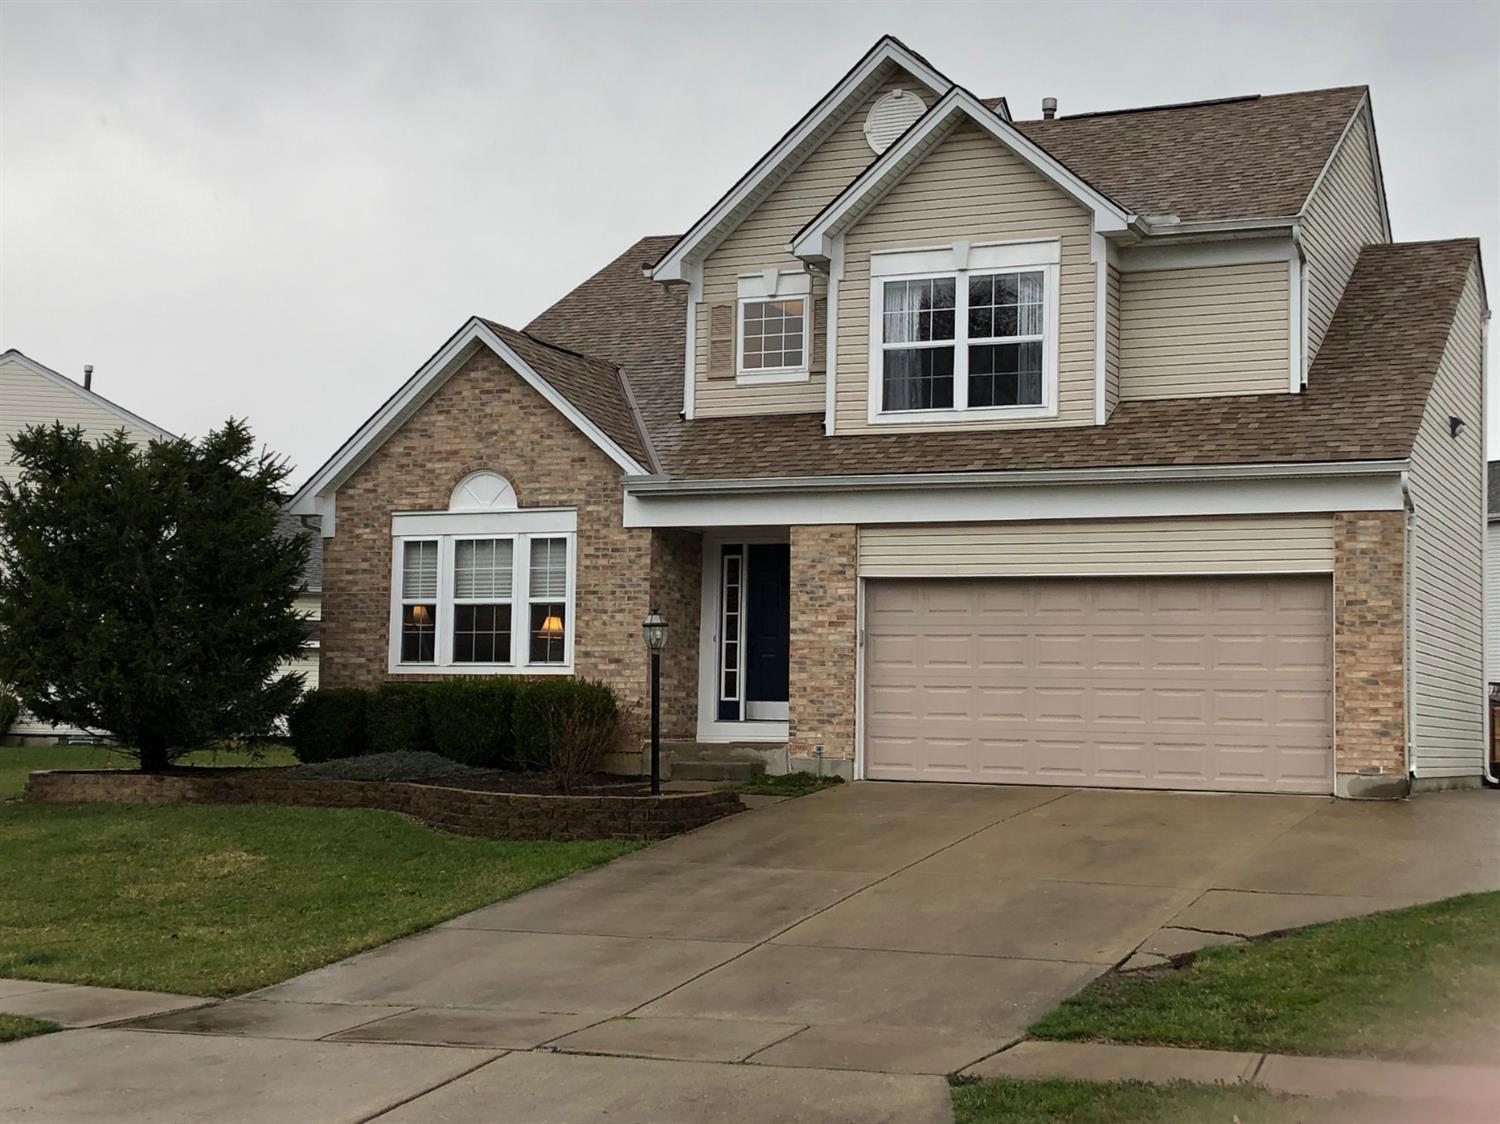 Property for sale at 9669 Fallshill Circle, Springfield Twp.,  Ohio 45231